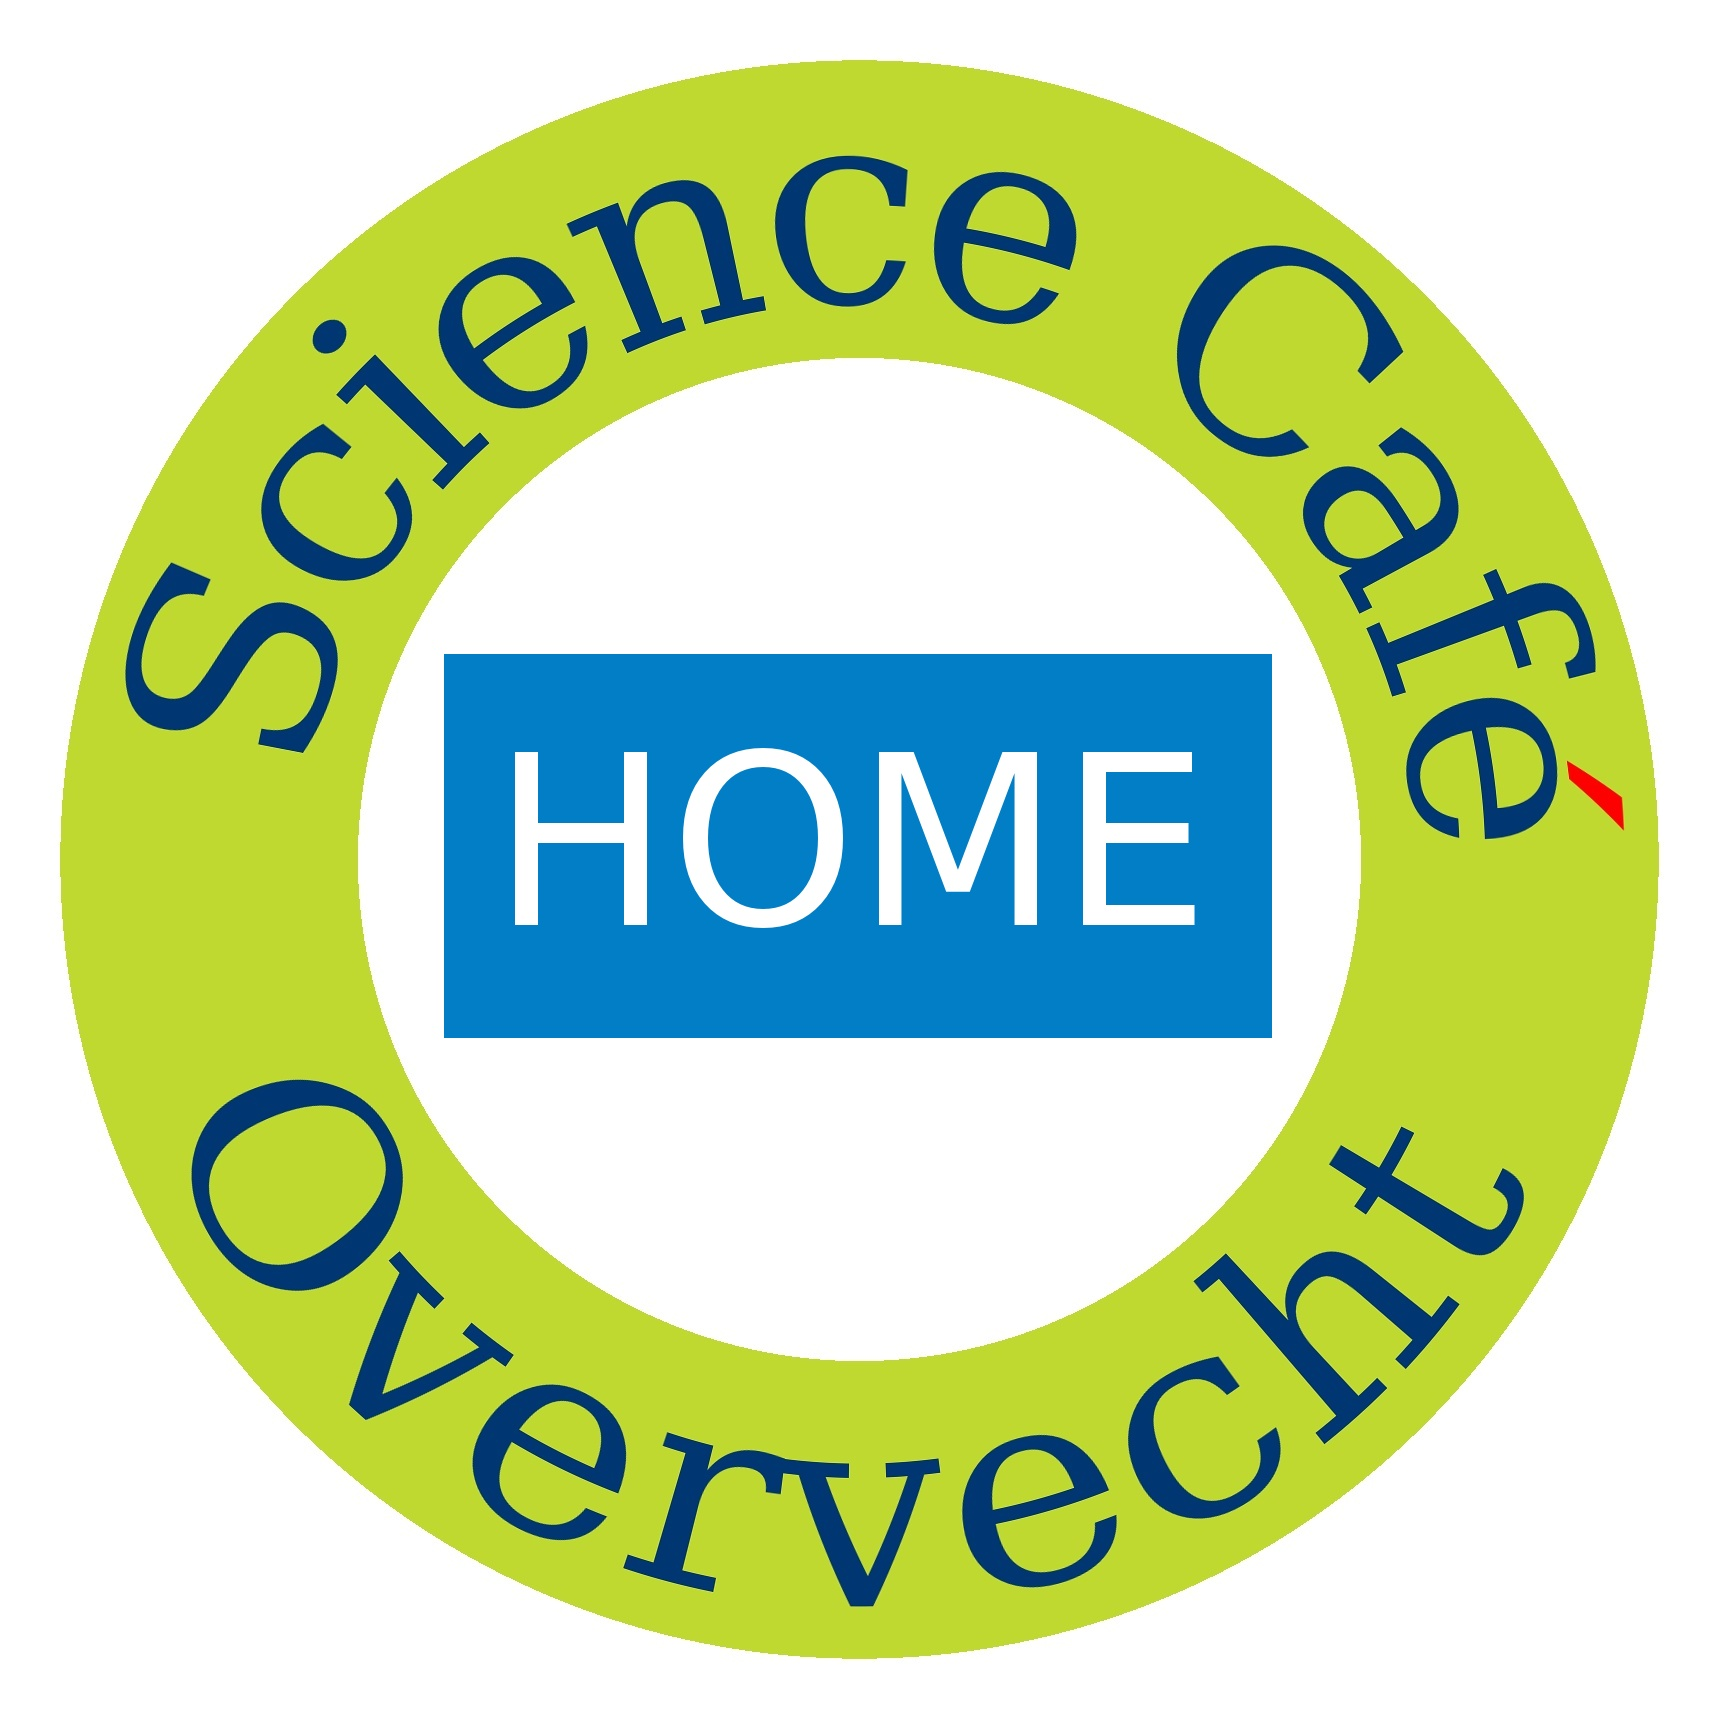 http://www.sciencecafeovervecht.nl/Energietransitie/logo-science-cafe-overvecht-home.jpg